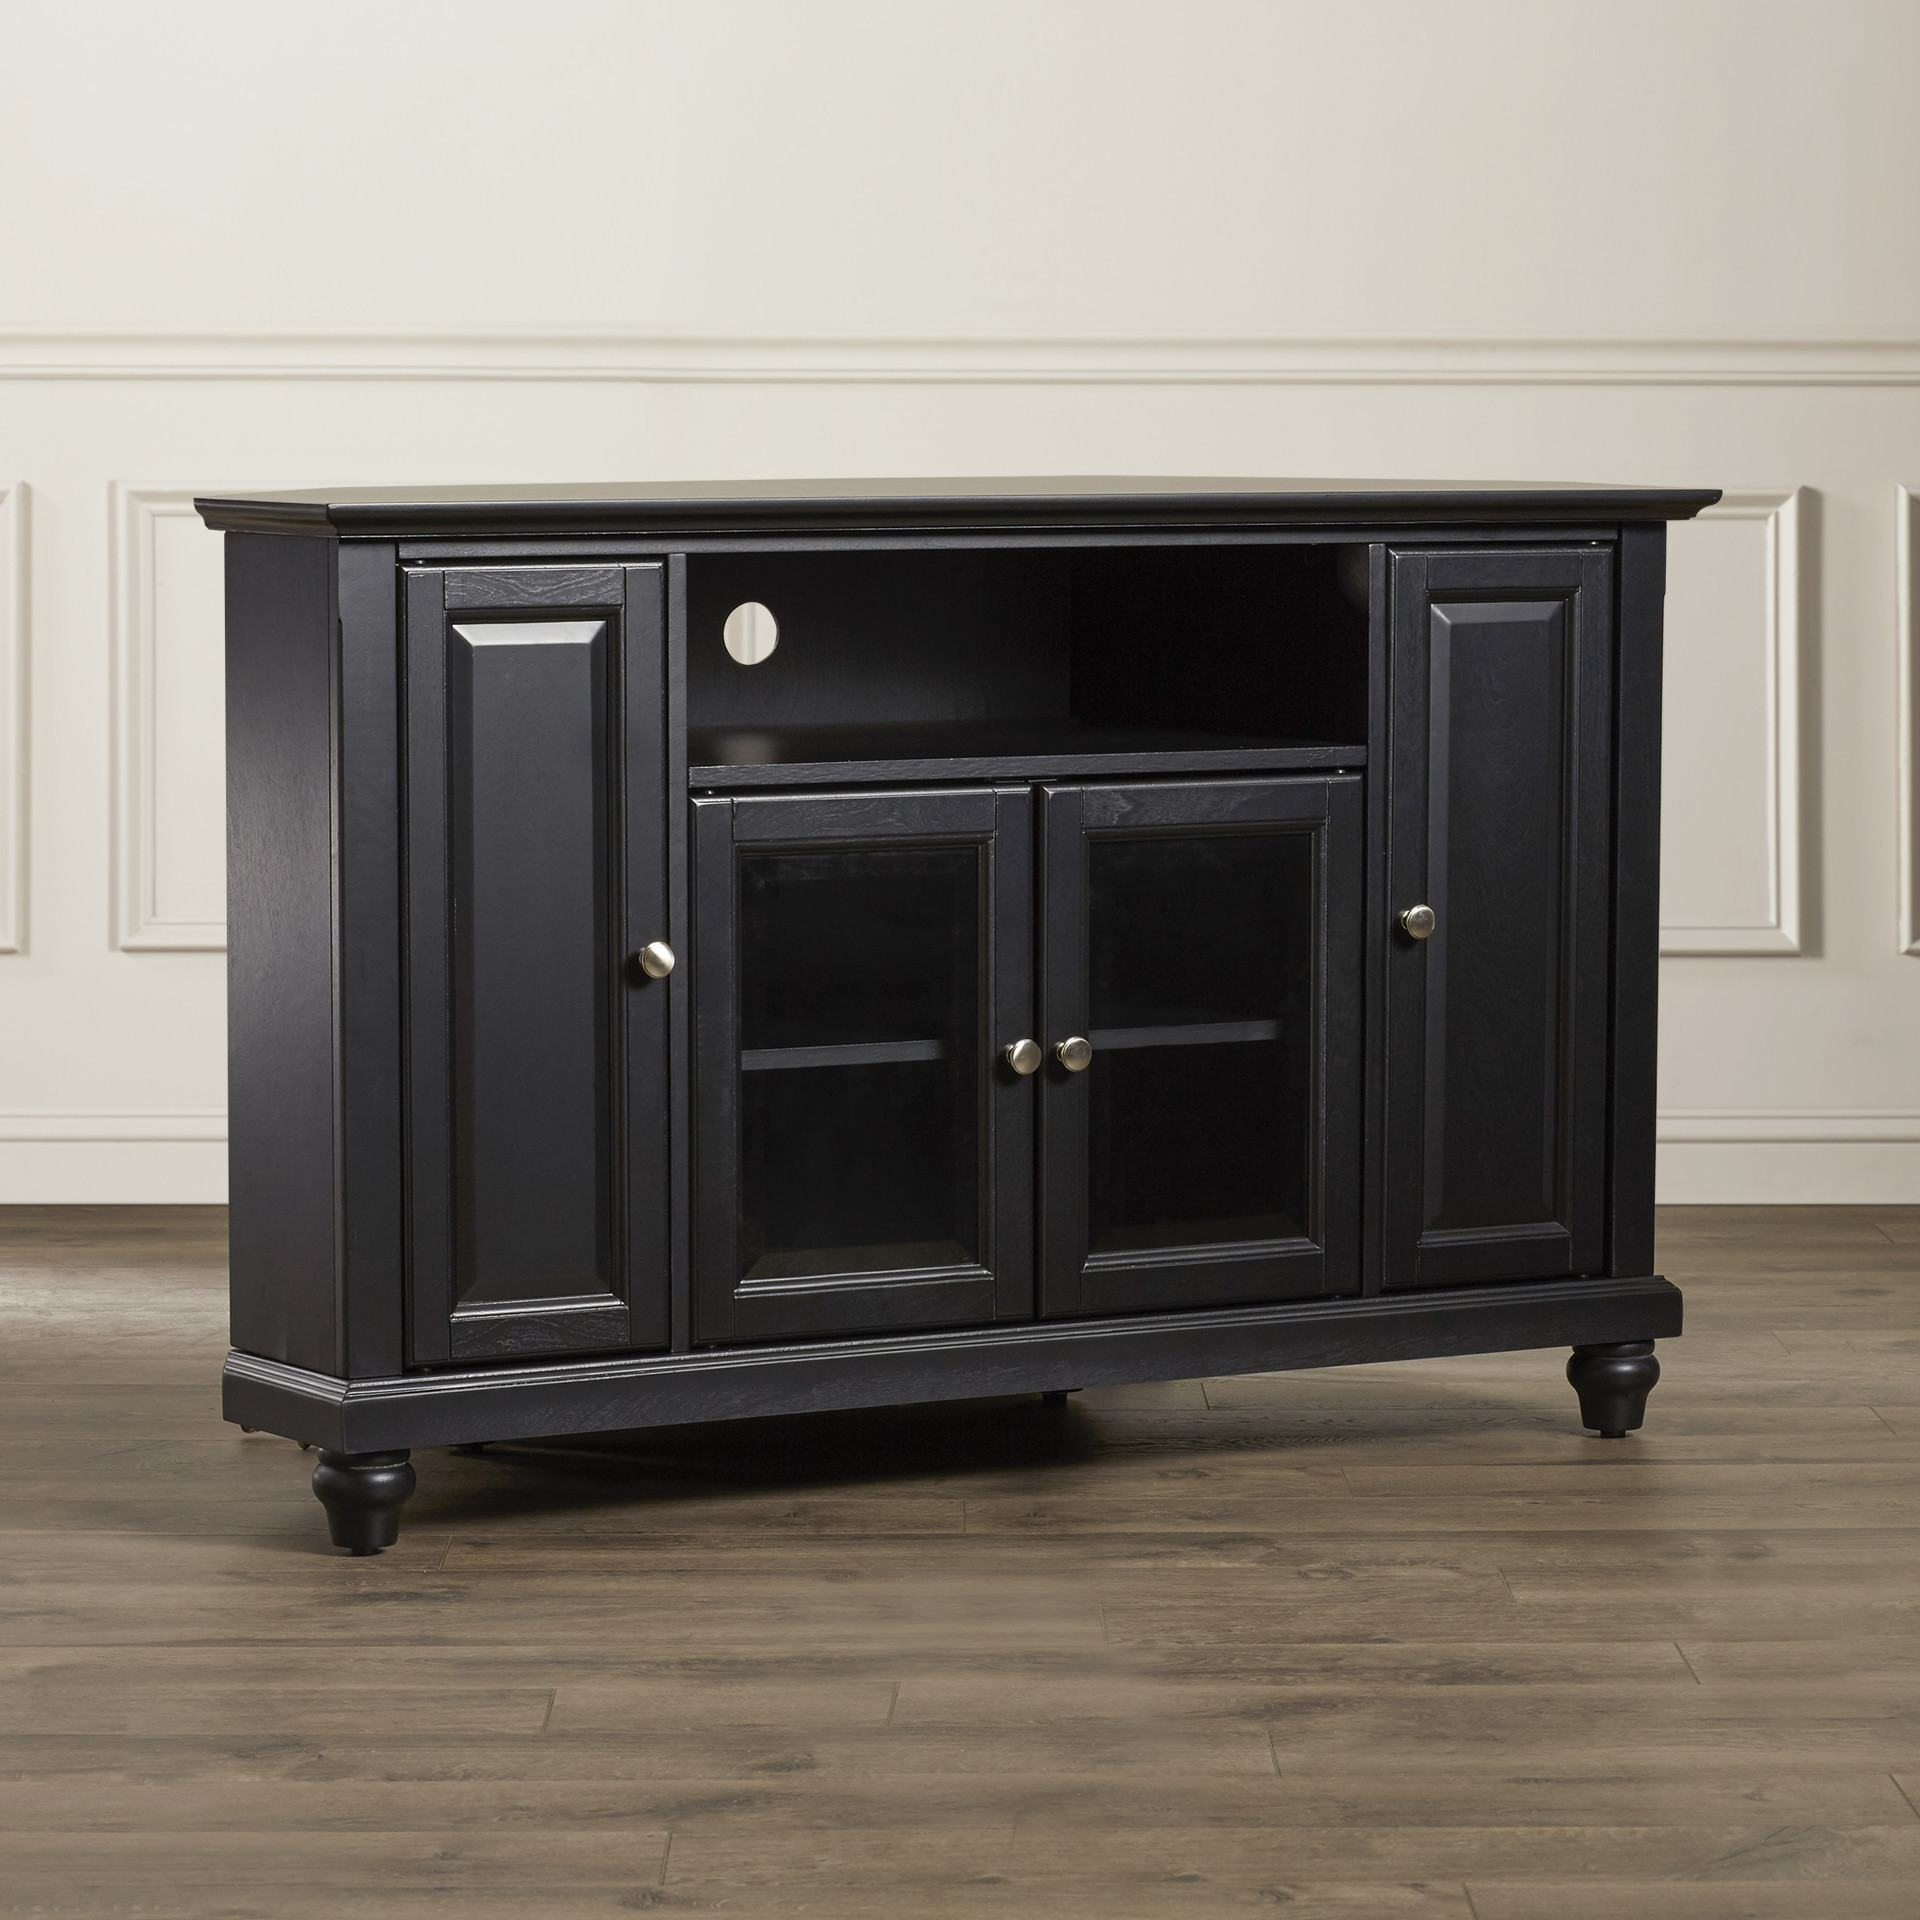 Recent 22 Lovely Wayfair Corner Tv Stand For Living Room Interior Decor With Wayfair Corner Tv Stands (View 20 of 20)